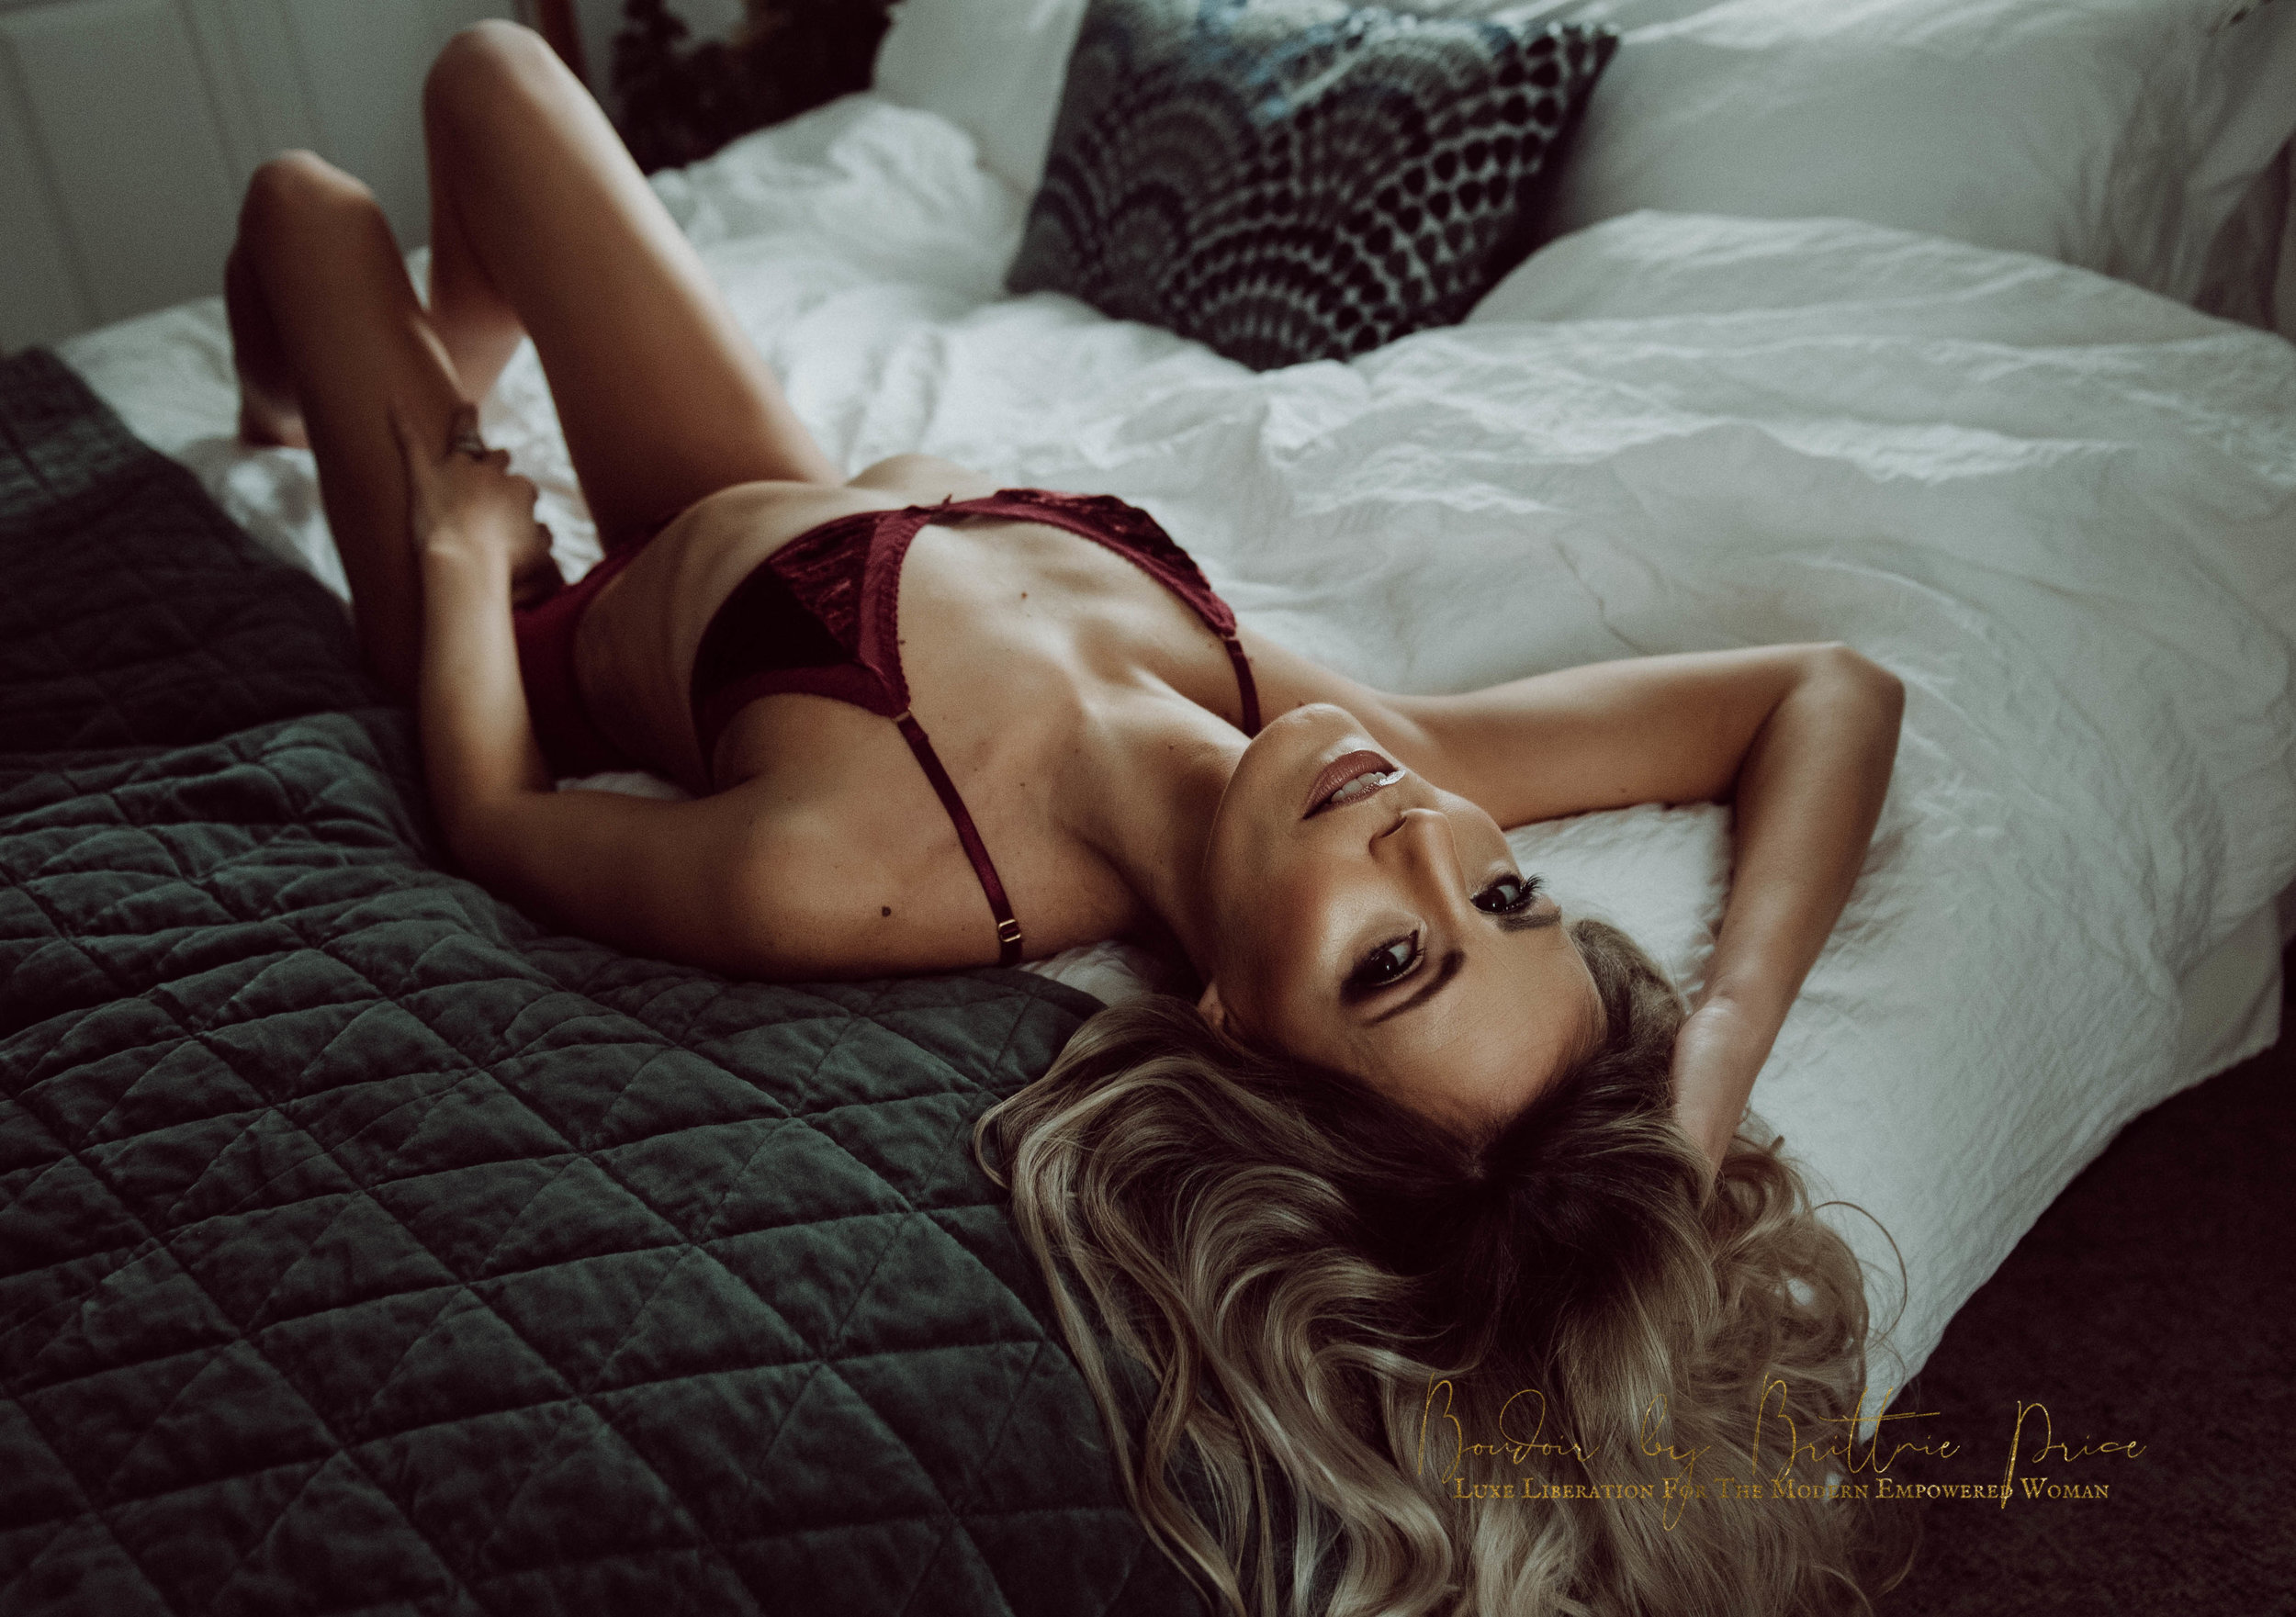 Sexy blonde in red bra laying on white sheets boudoir photography new york city studio